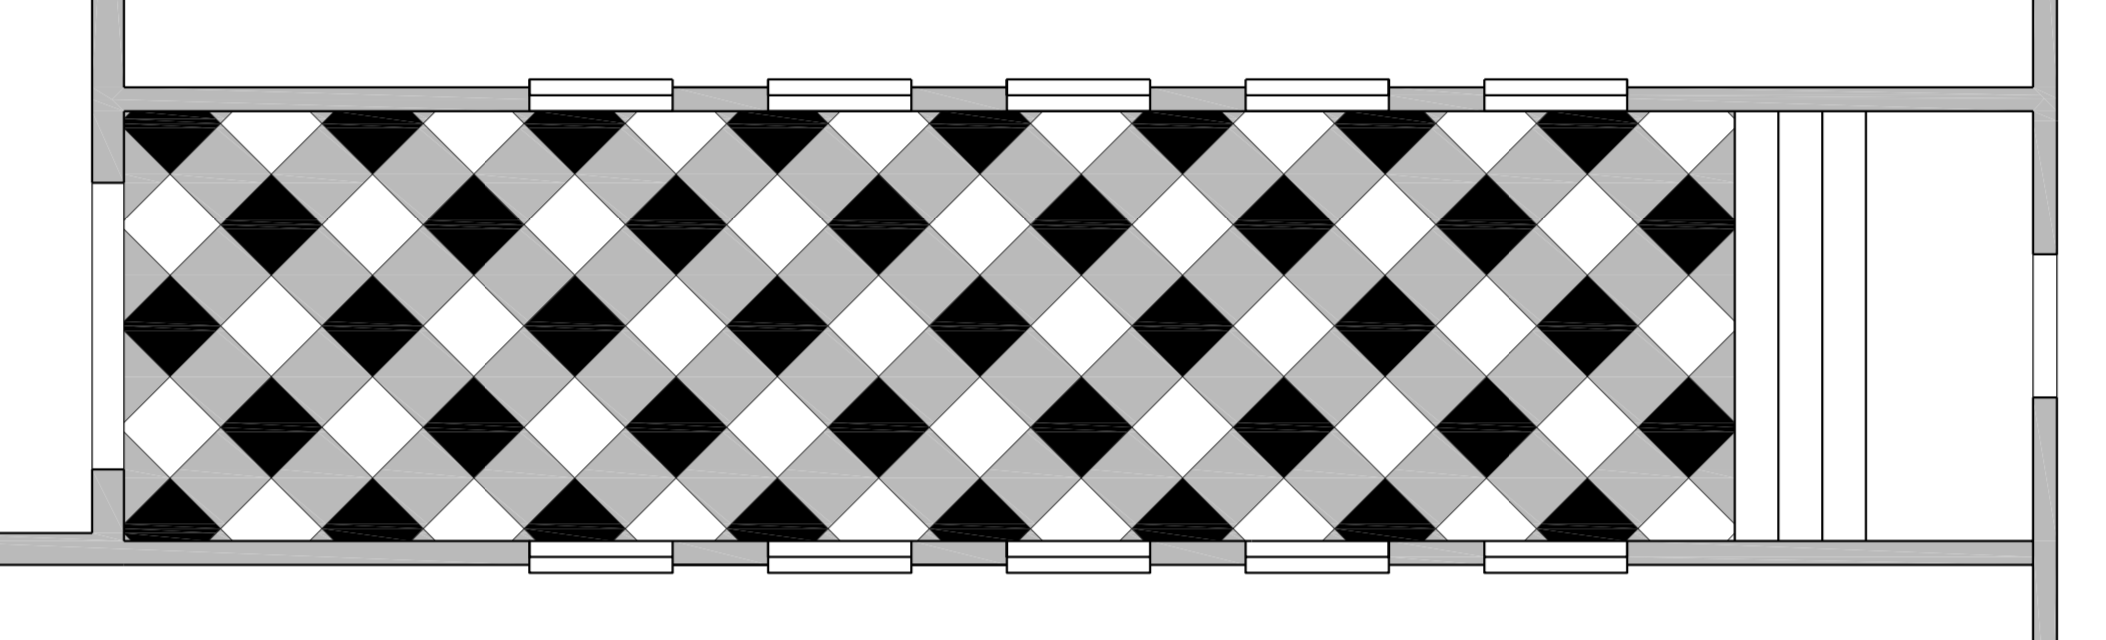 plaid-tile-floor-installation-diagram.png